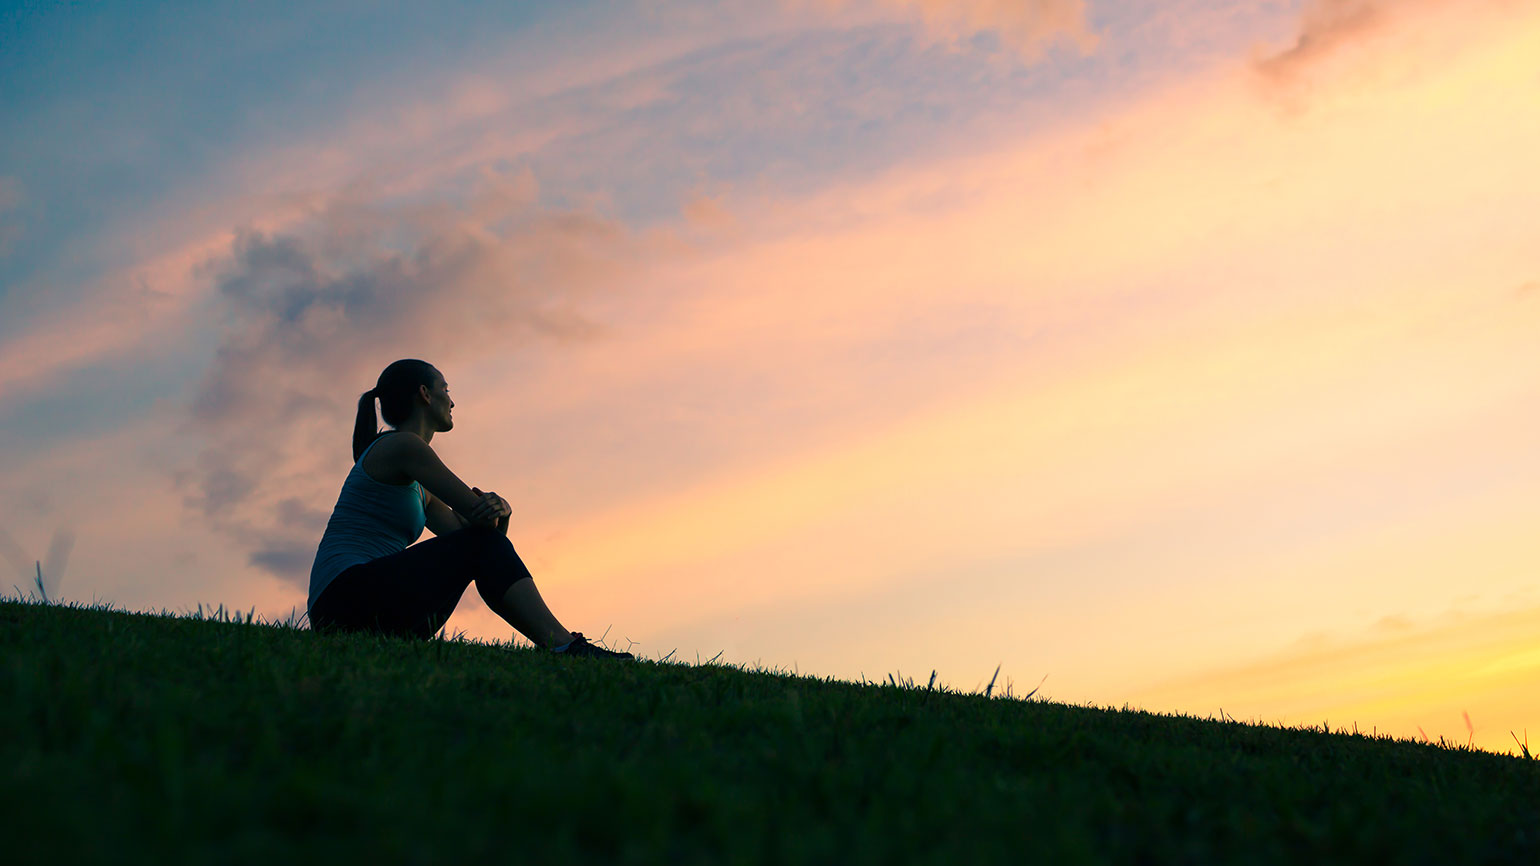 A woman enjoys a moment of peace and calm at sunrise